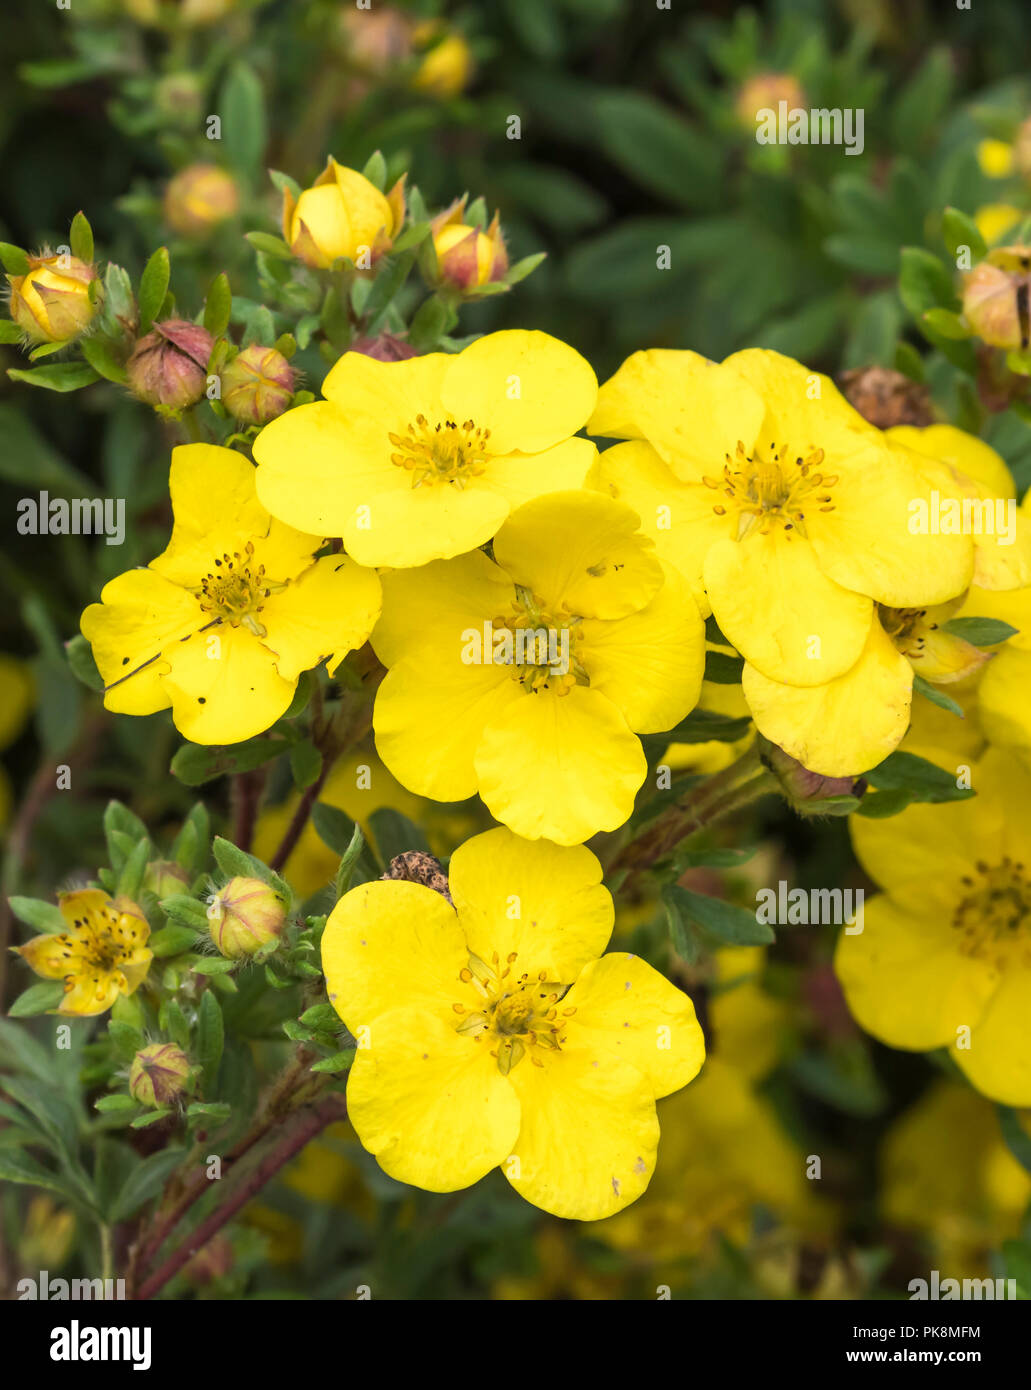 Potentilla fruticosa 'Sommerflor' (AKA Shrubby Cinquefoil 'Sommerflor'), a yellow bushy deciduous shrub in early Autumn in West Sussex, England, UK. - Stock Image